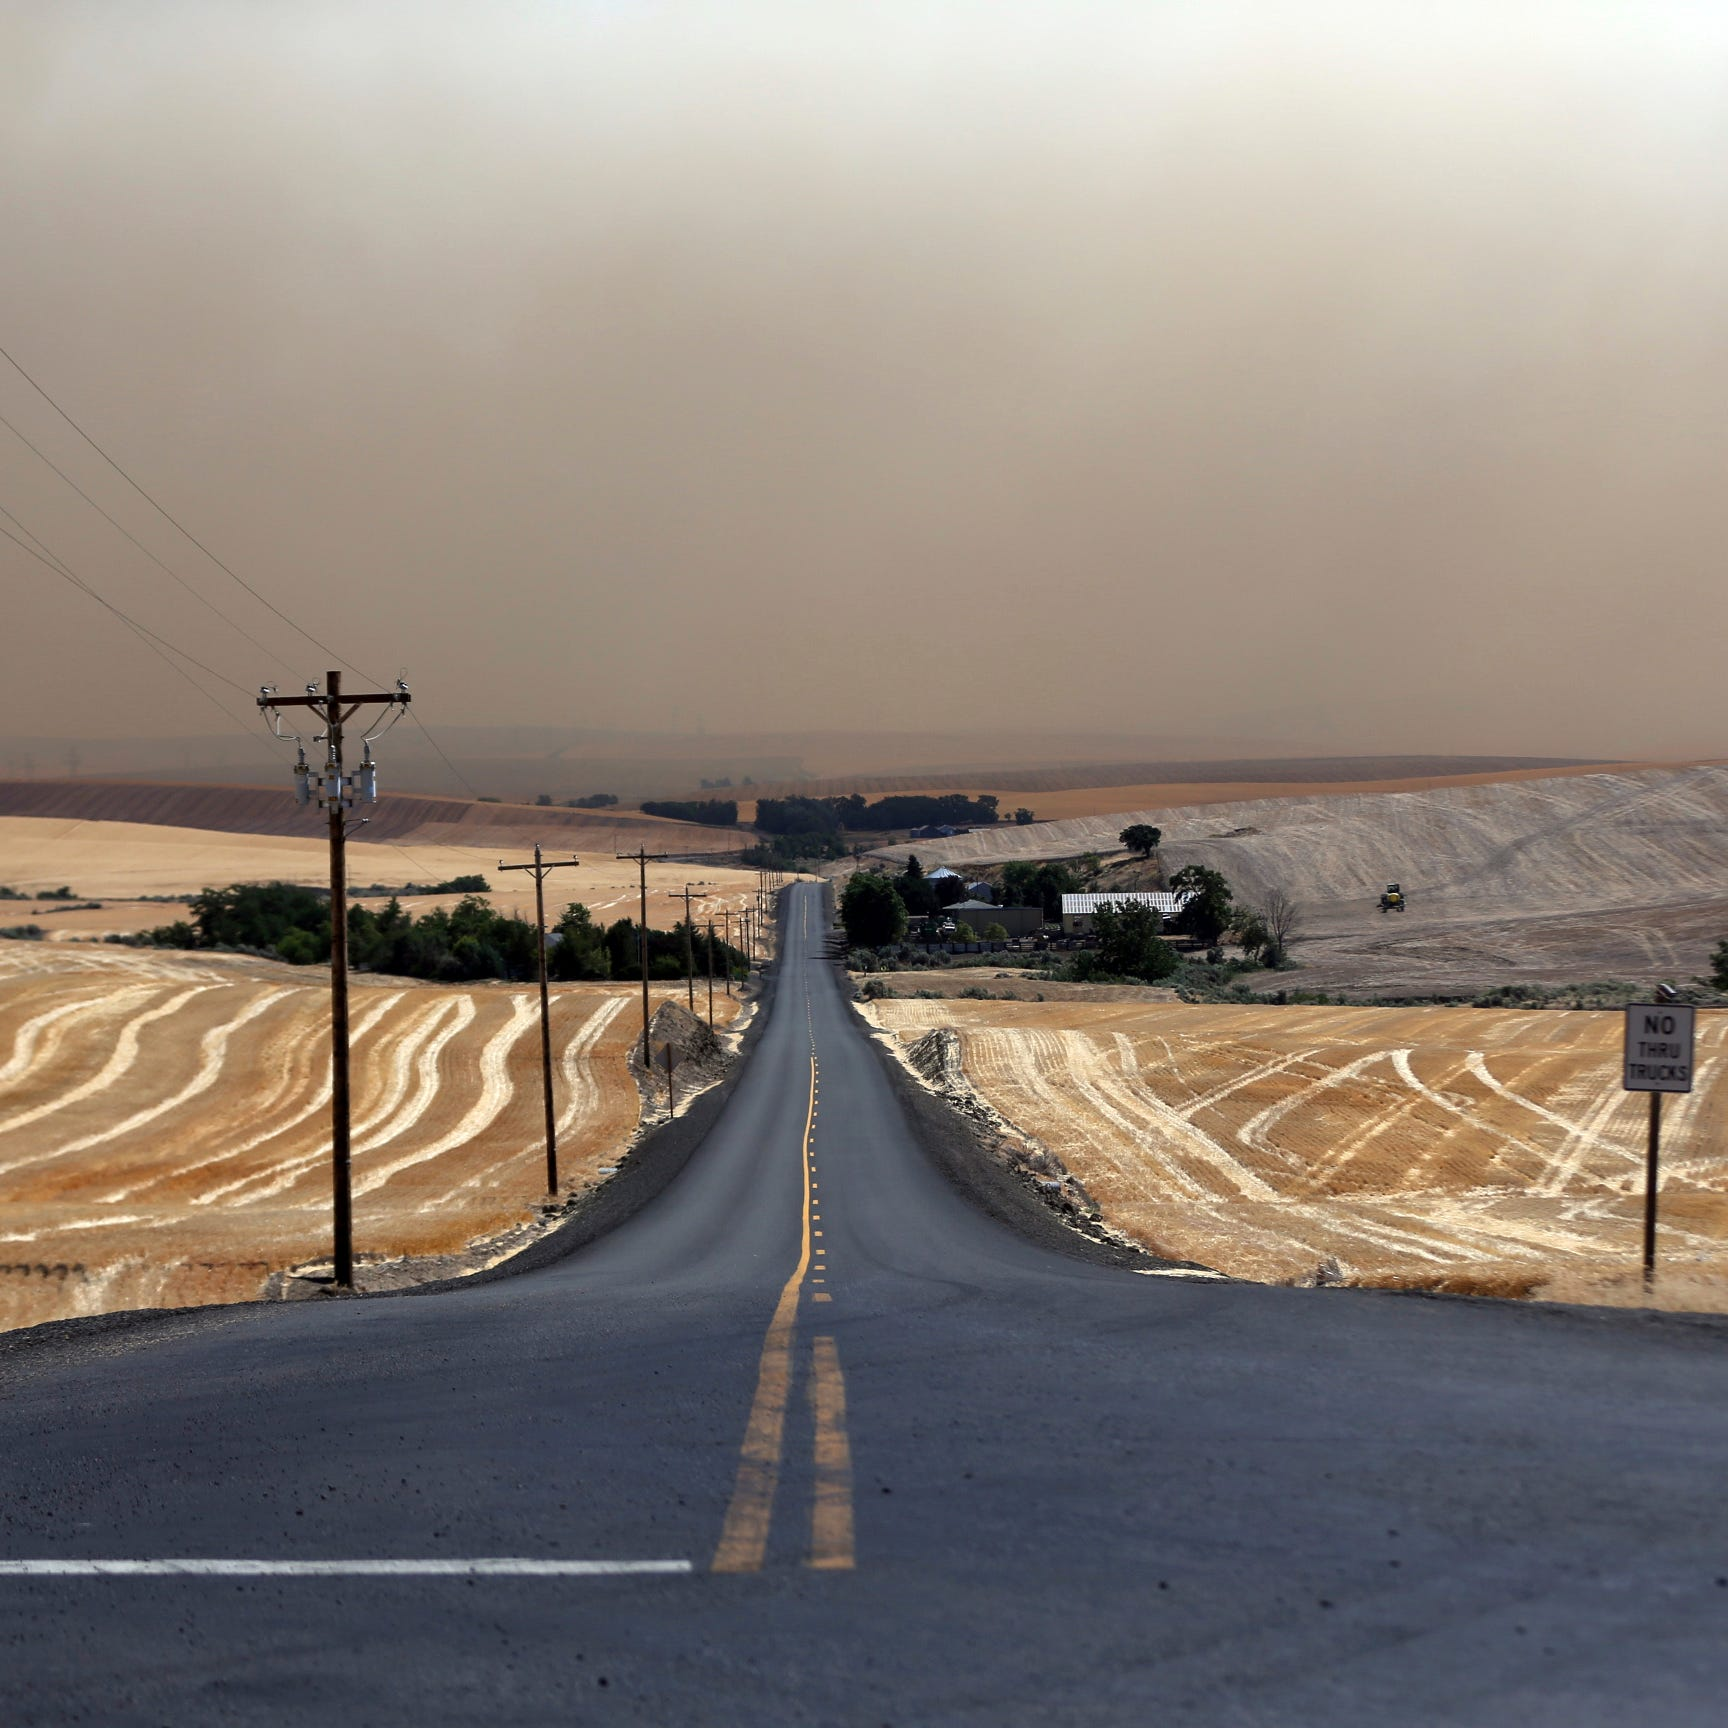 Oregon wheat farmers try to stop fire that's consuming crops